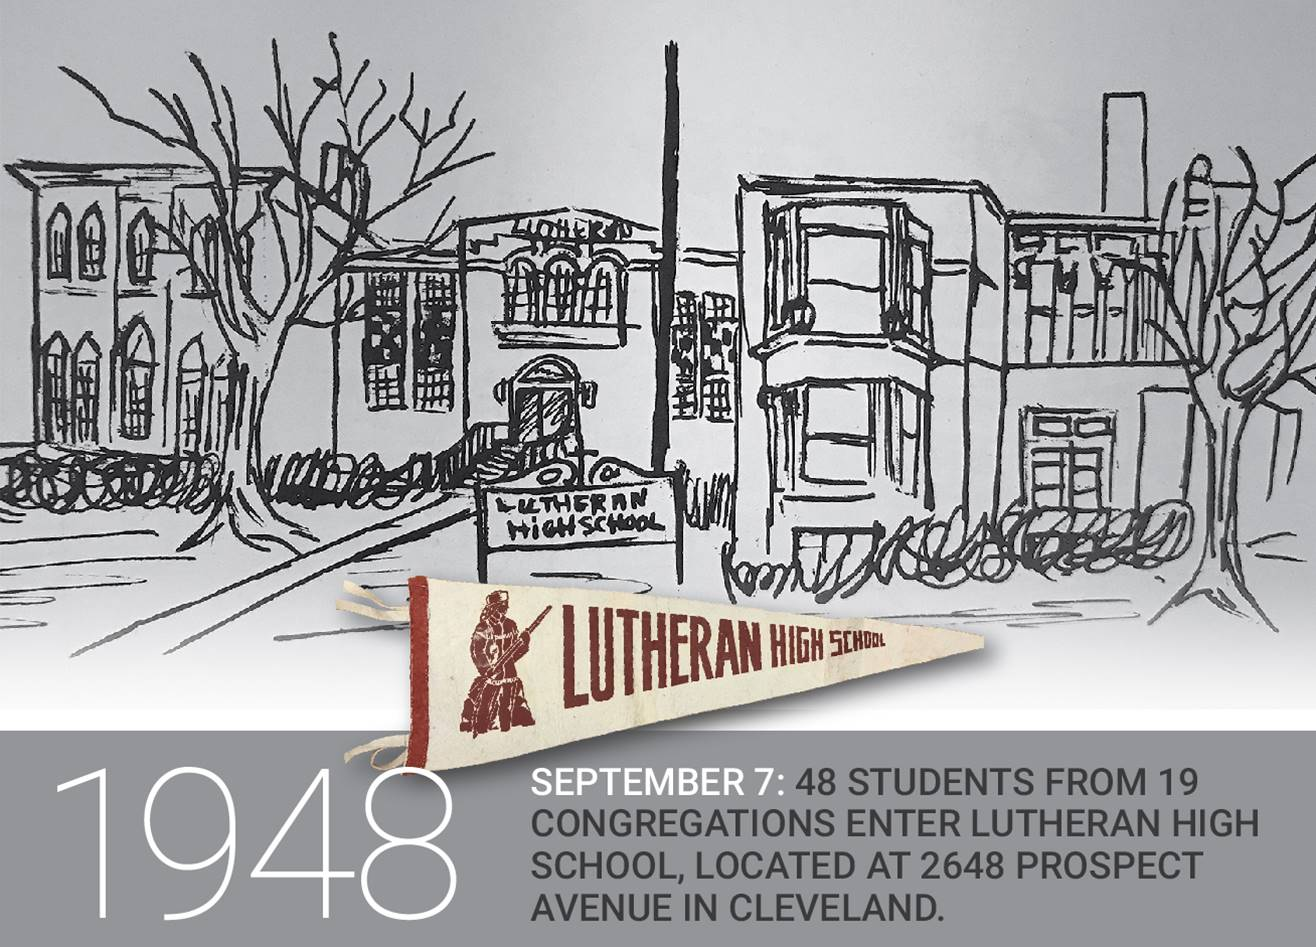 History-1948-Lutheran-High-School-Opens